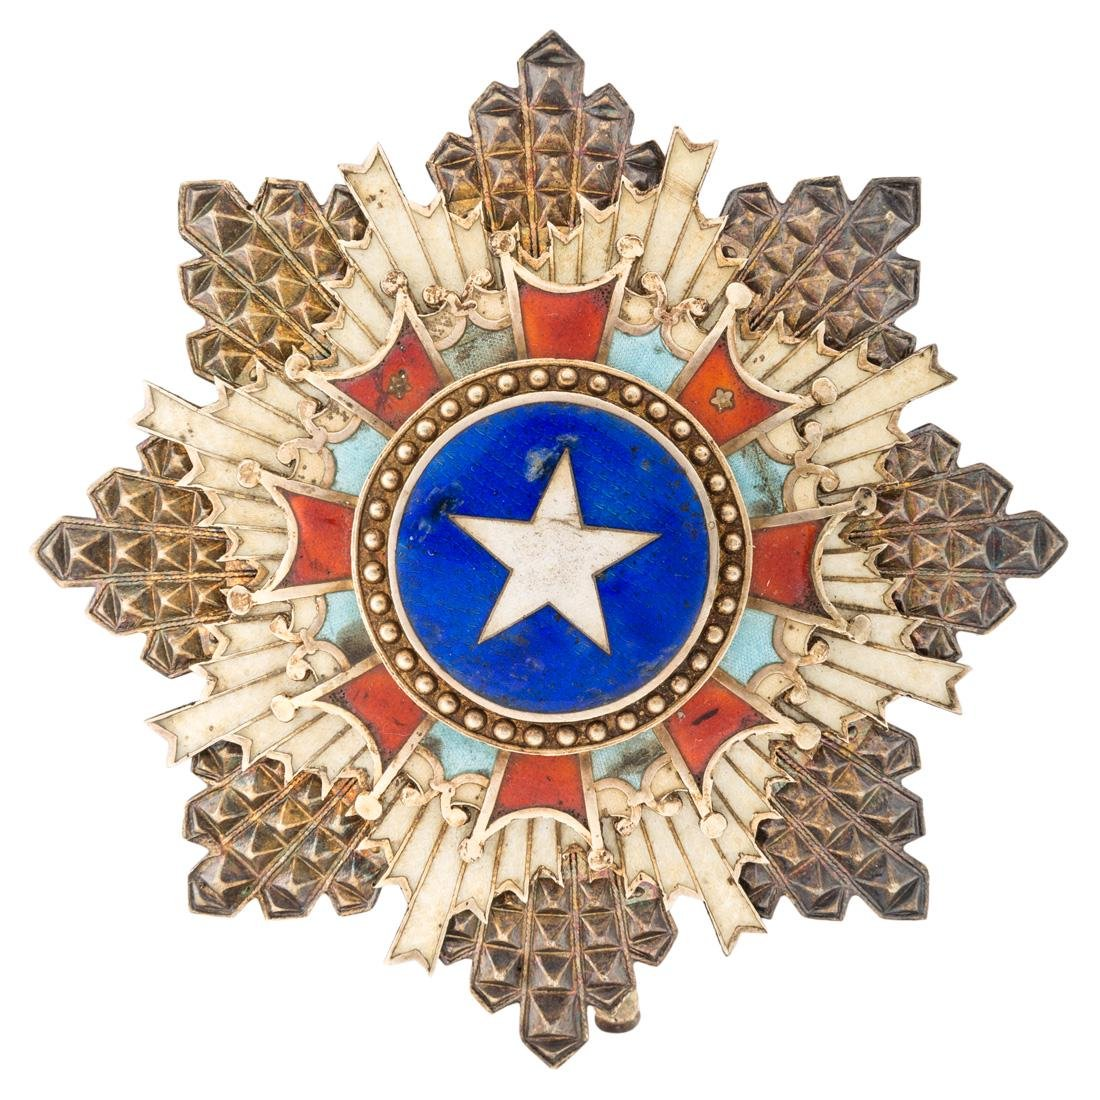 A CHINESE ORDER OF THE BRILLIANT STAR, 2ND CLASS